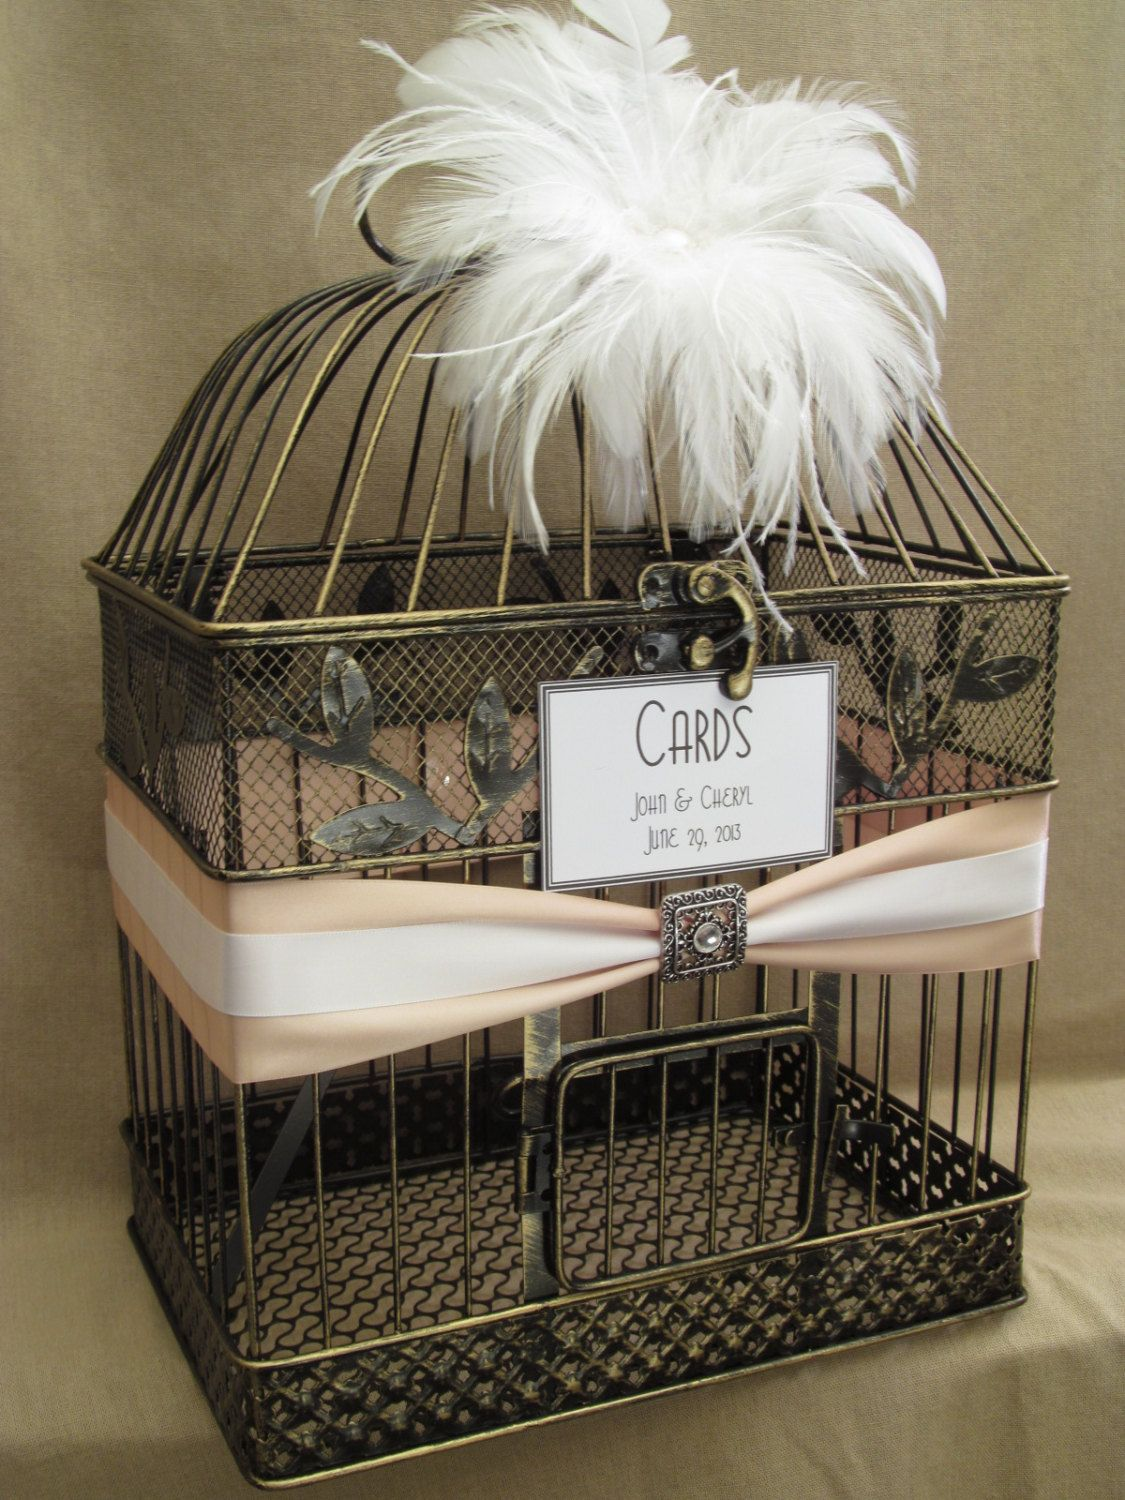 Deluxe Wedding Card Box Holder White Ostrich Feathers Art Deco